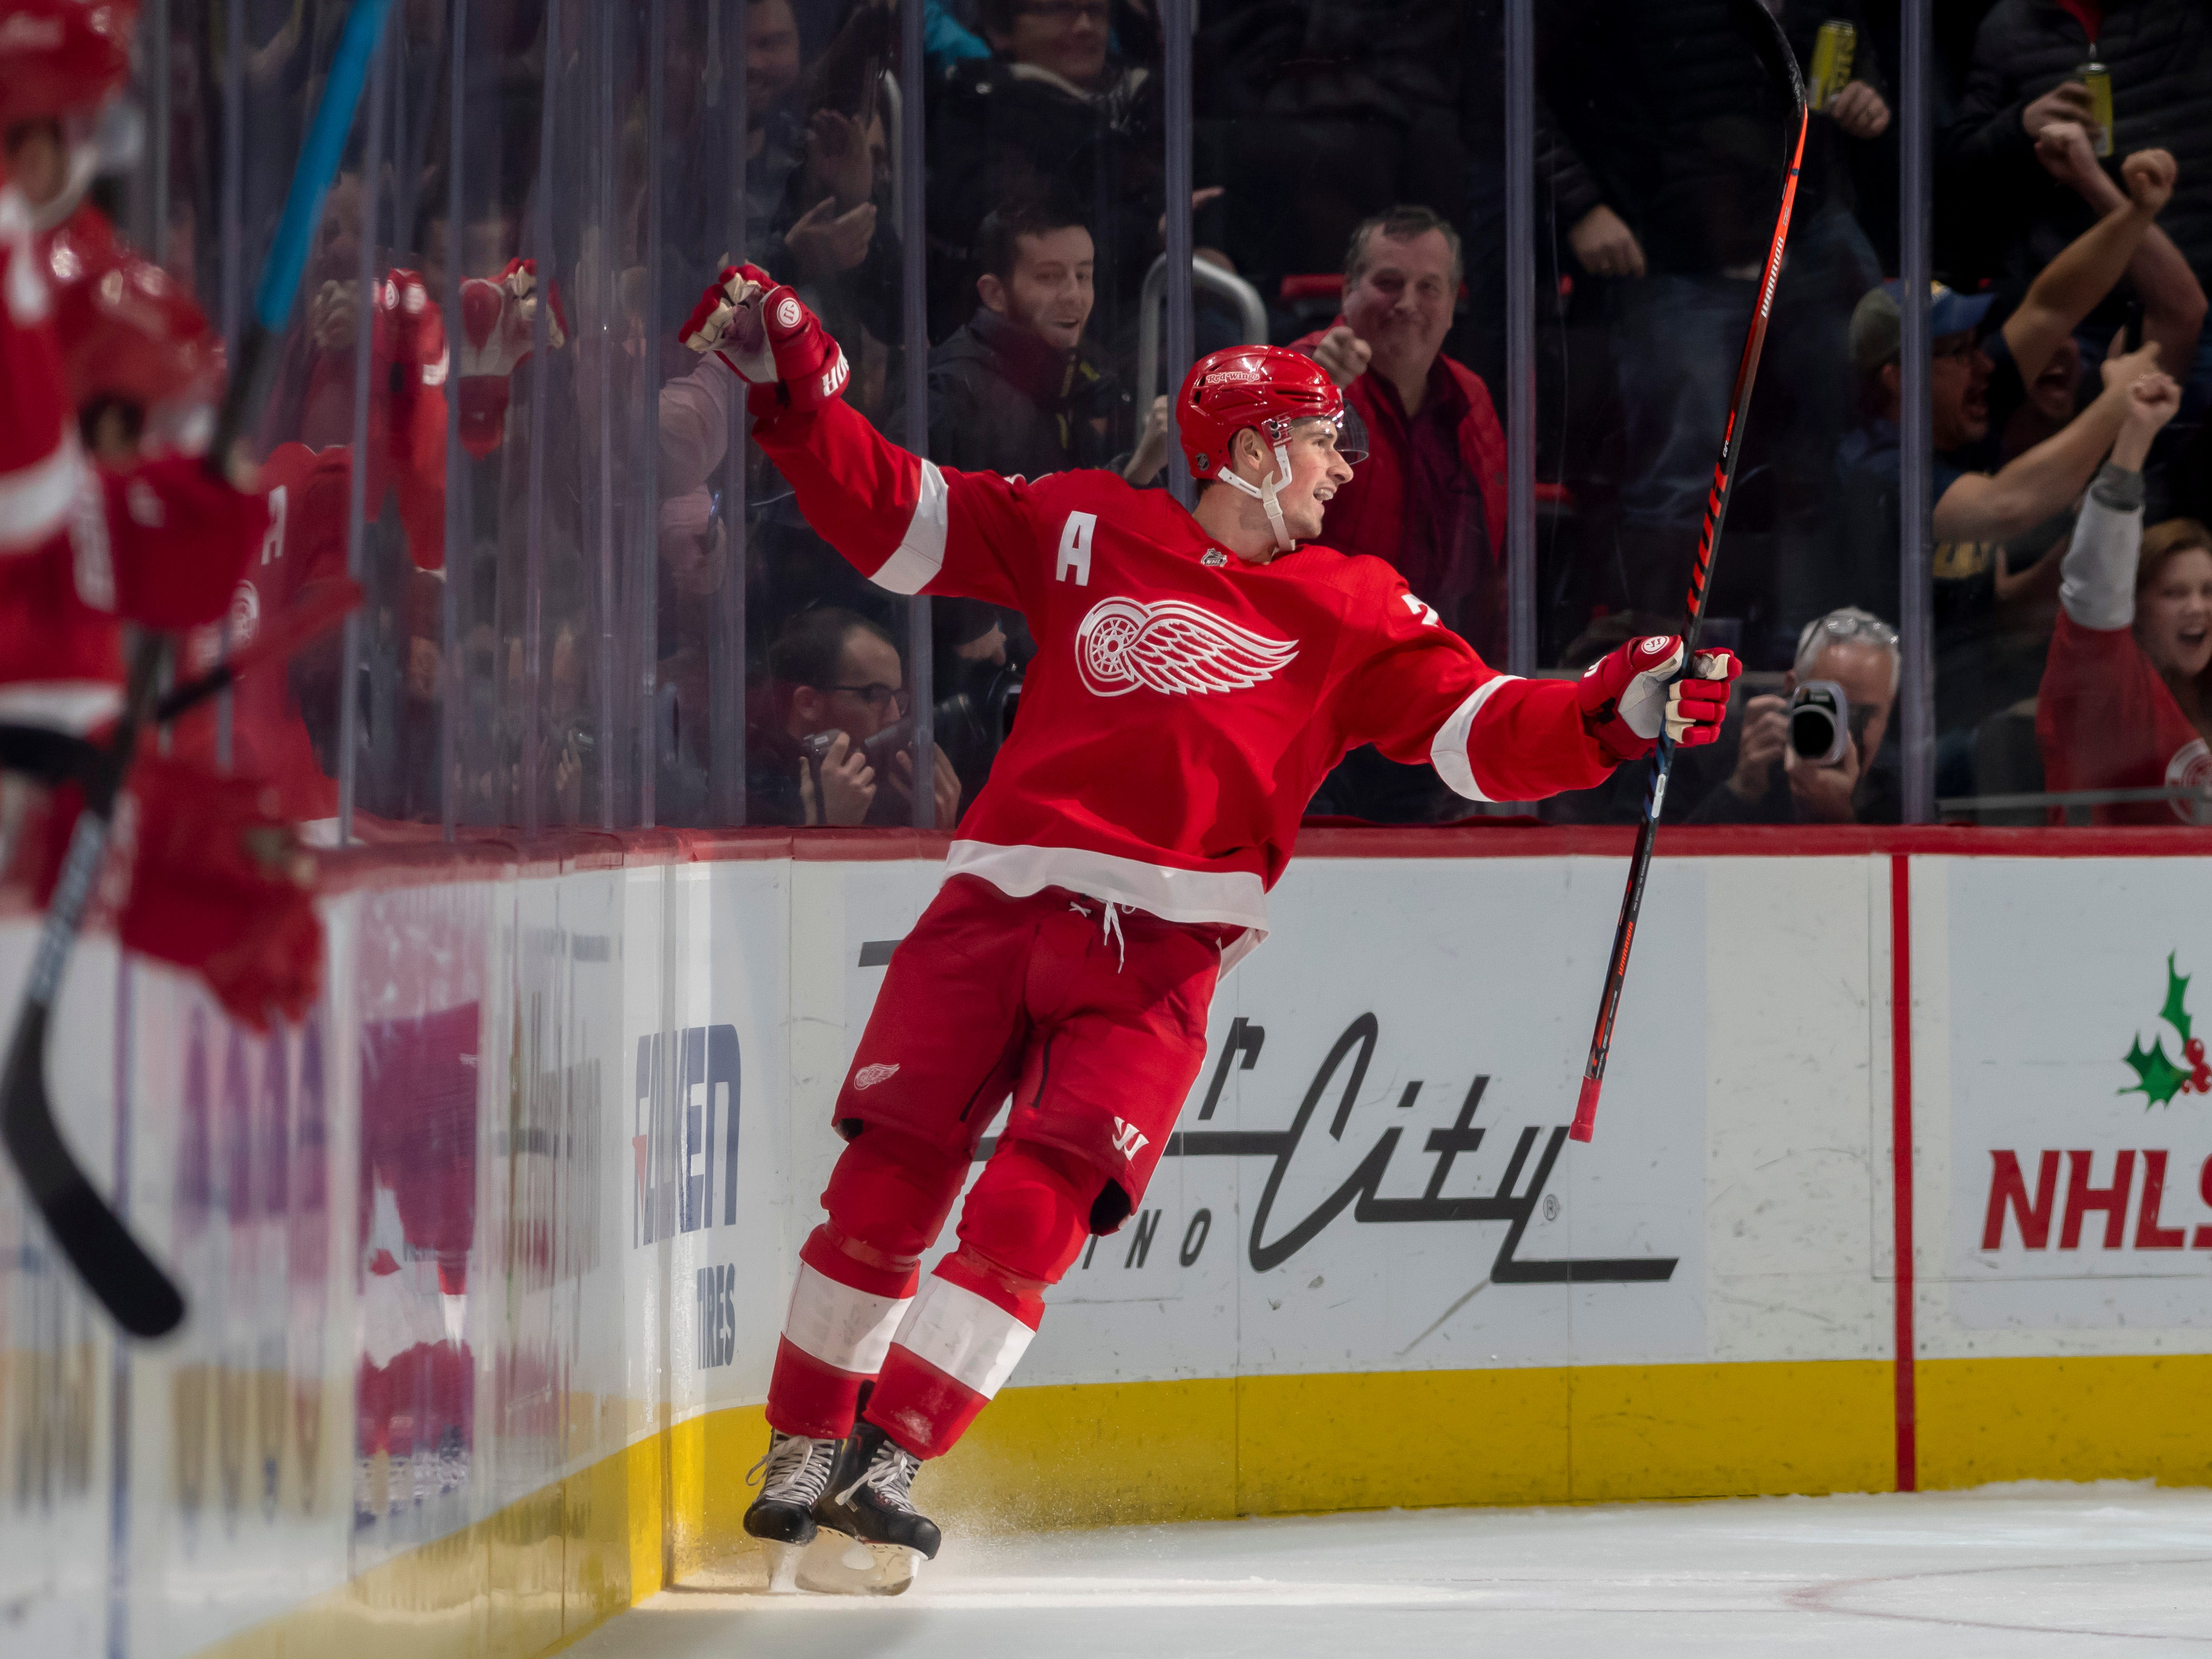 Detroit center Dylan Larkin celebrates after scoring in the second period.